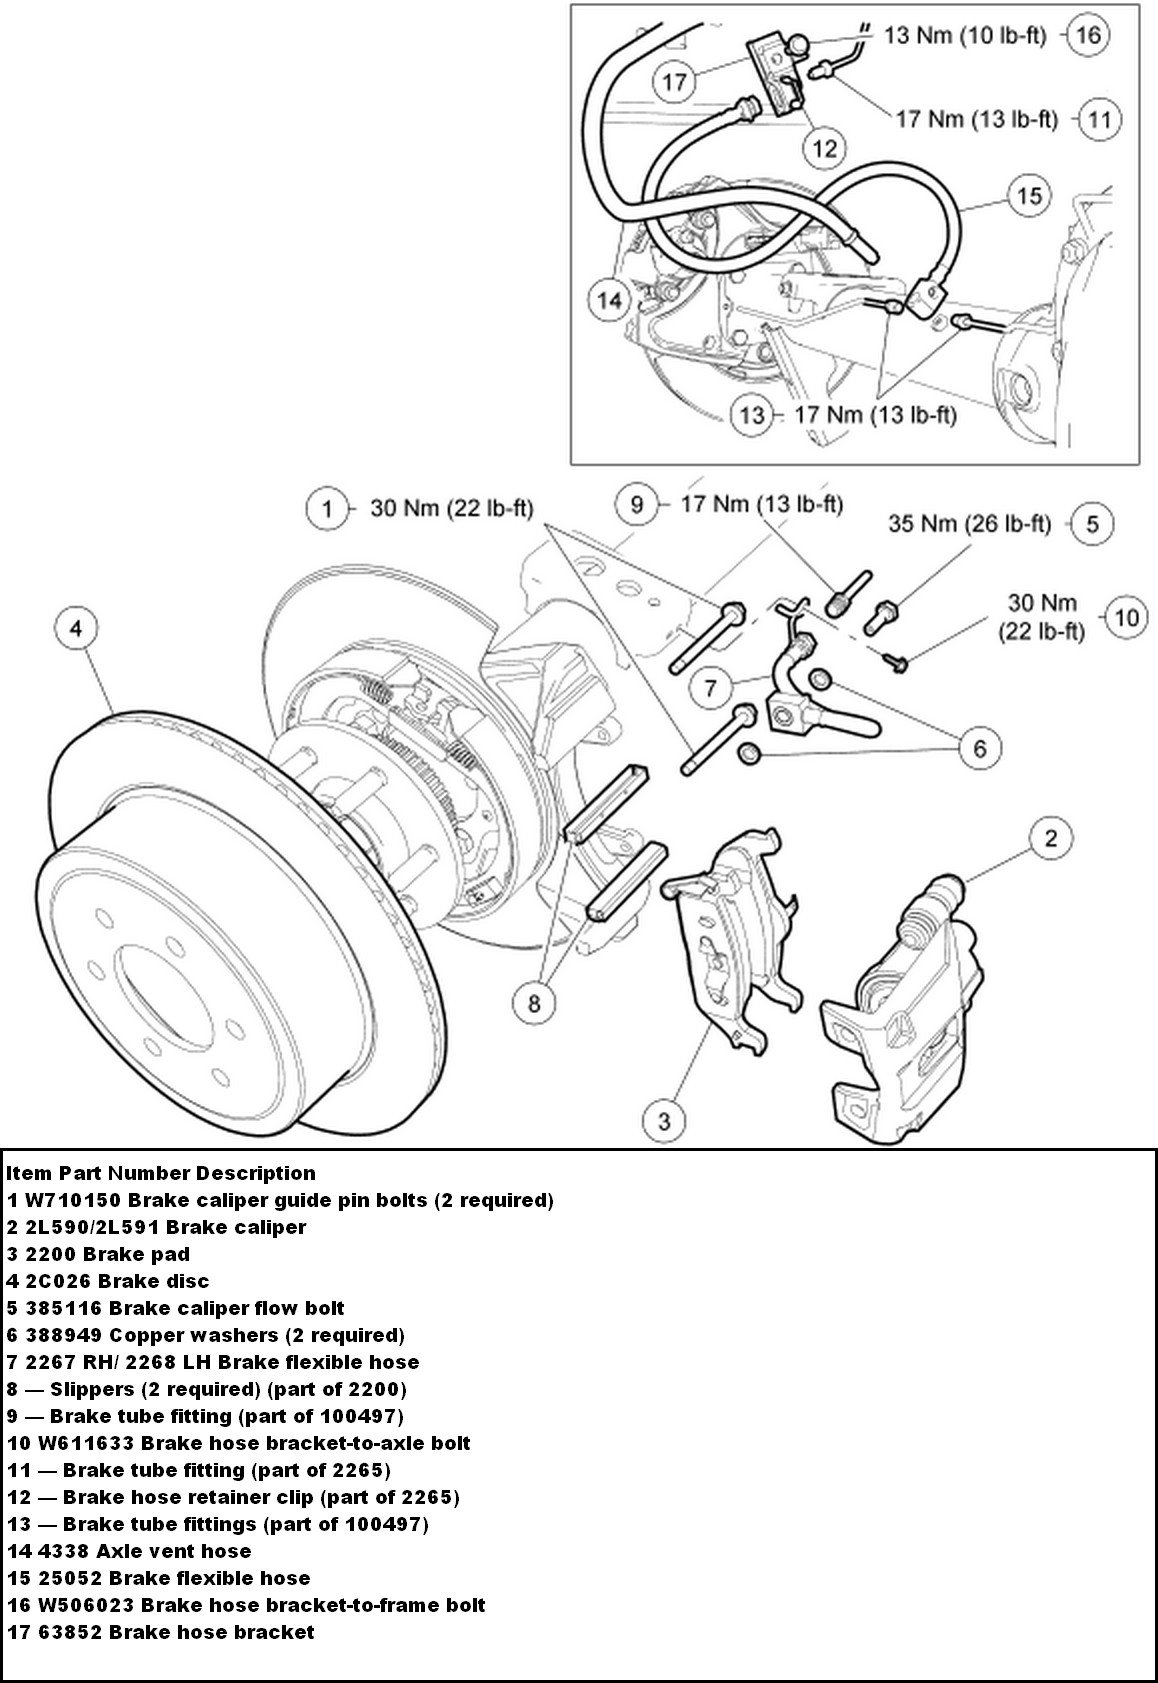 honda 420 engine diagram